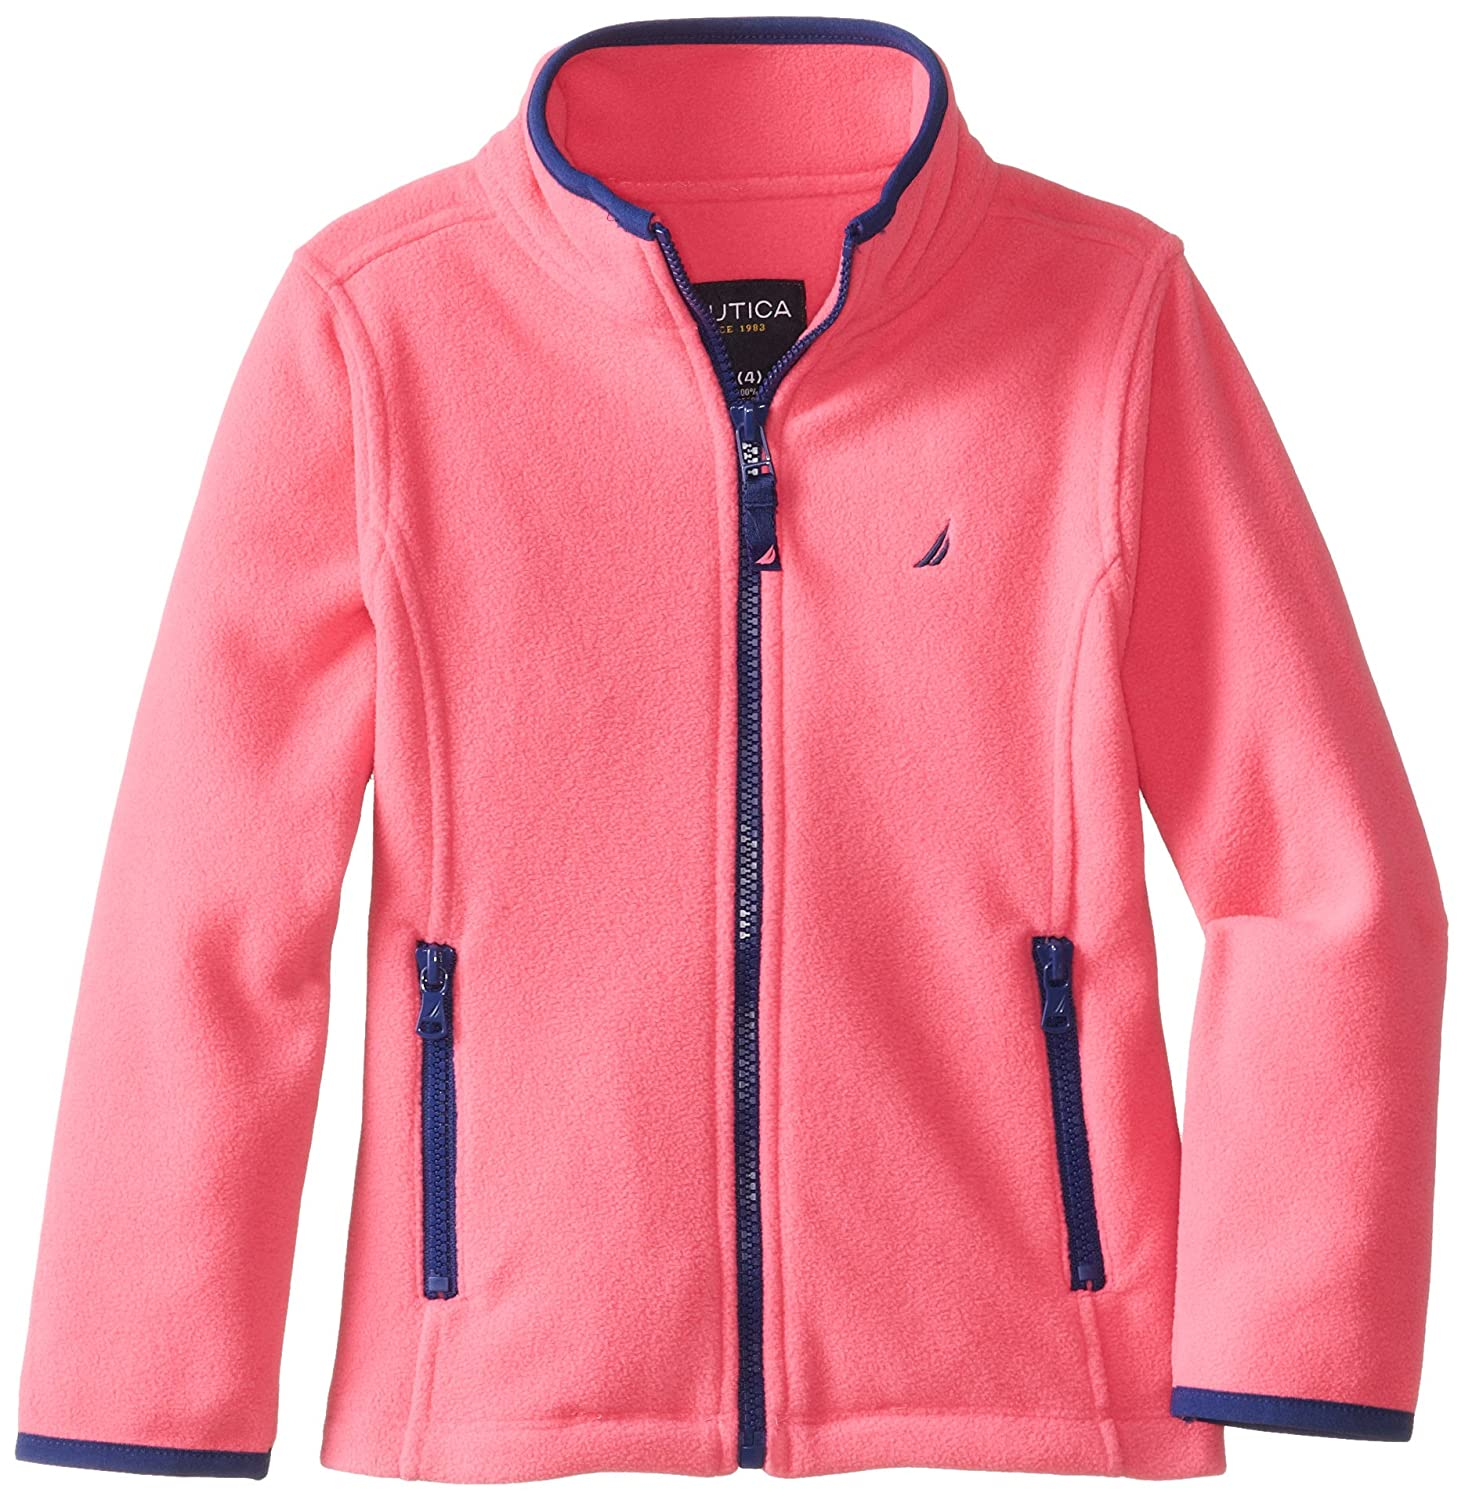 Amazon.com: Nautica Girls' Polar Fleece Front Zip Jacket: Clothing